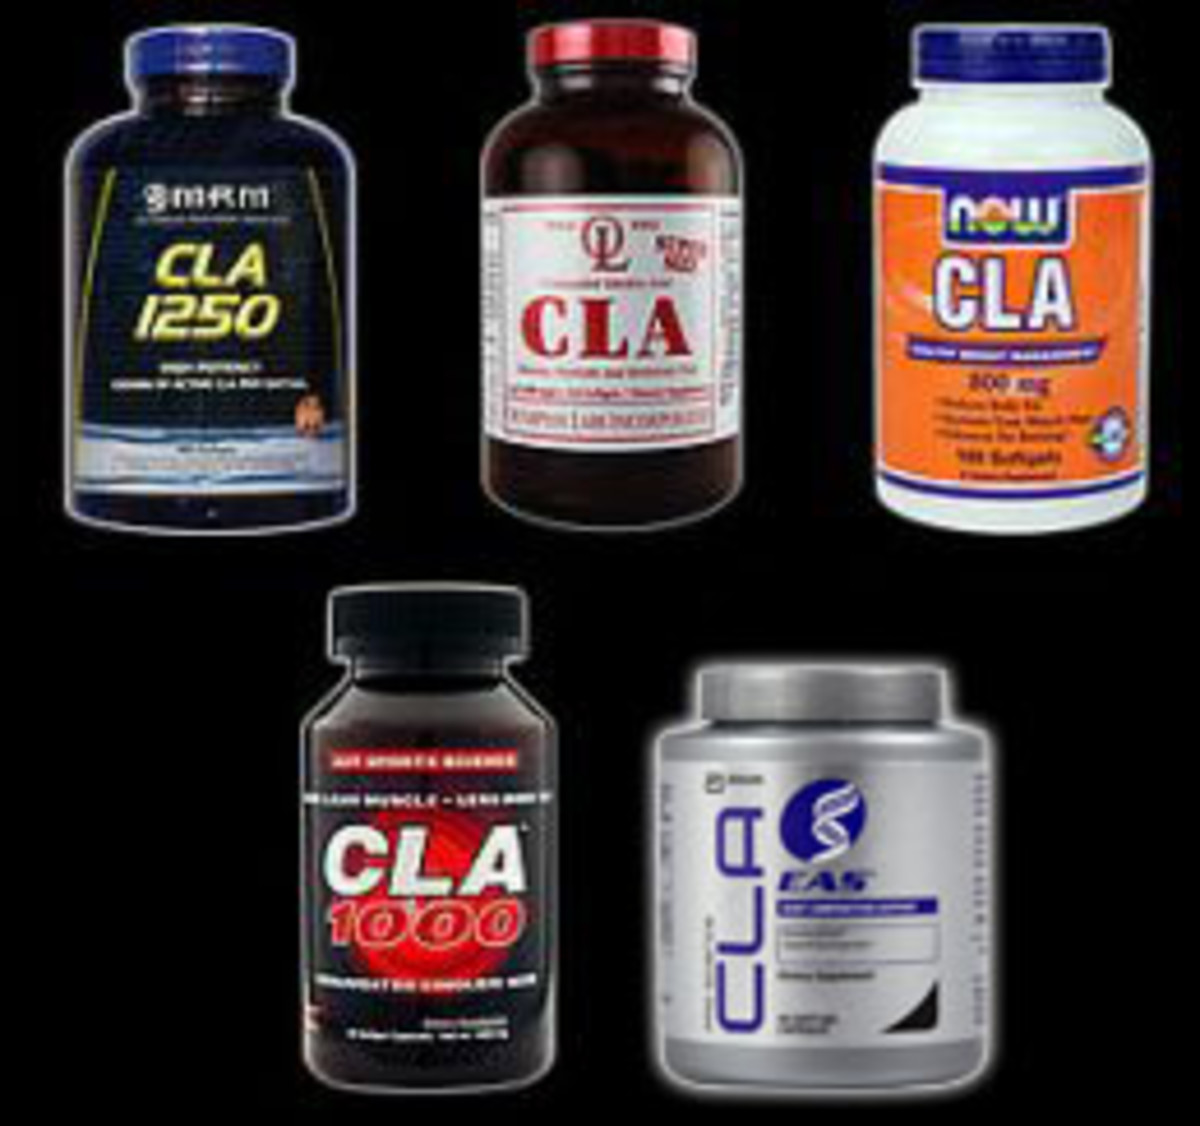 CLA - Top 5 Supplements & Conclusion